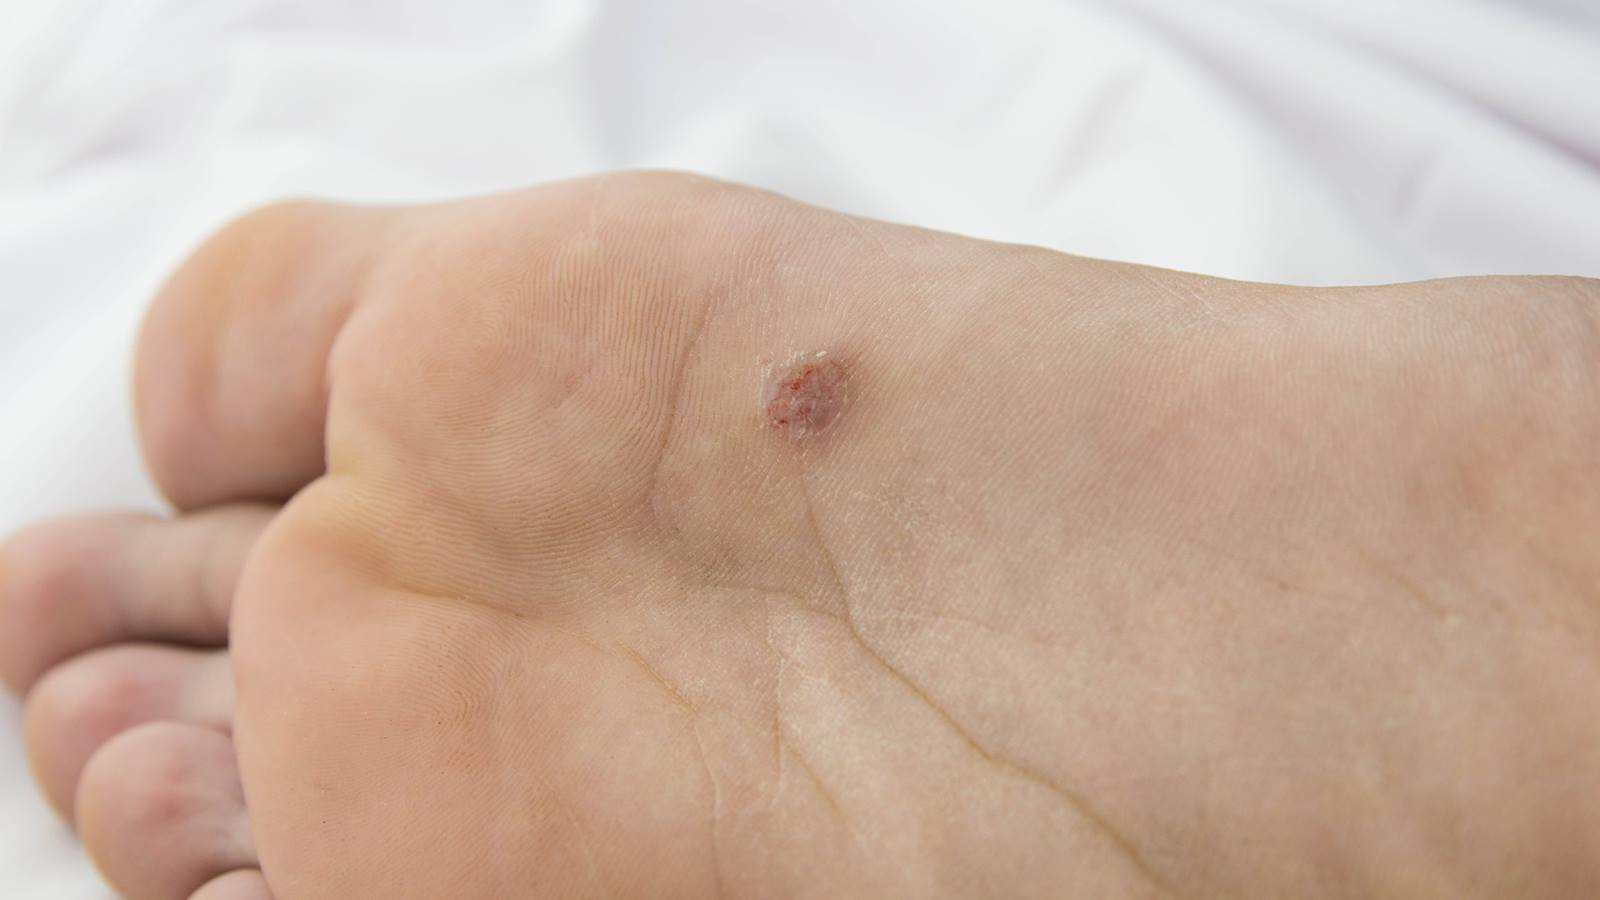 hpv causes warts on feet